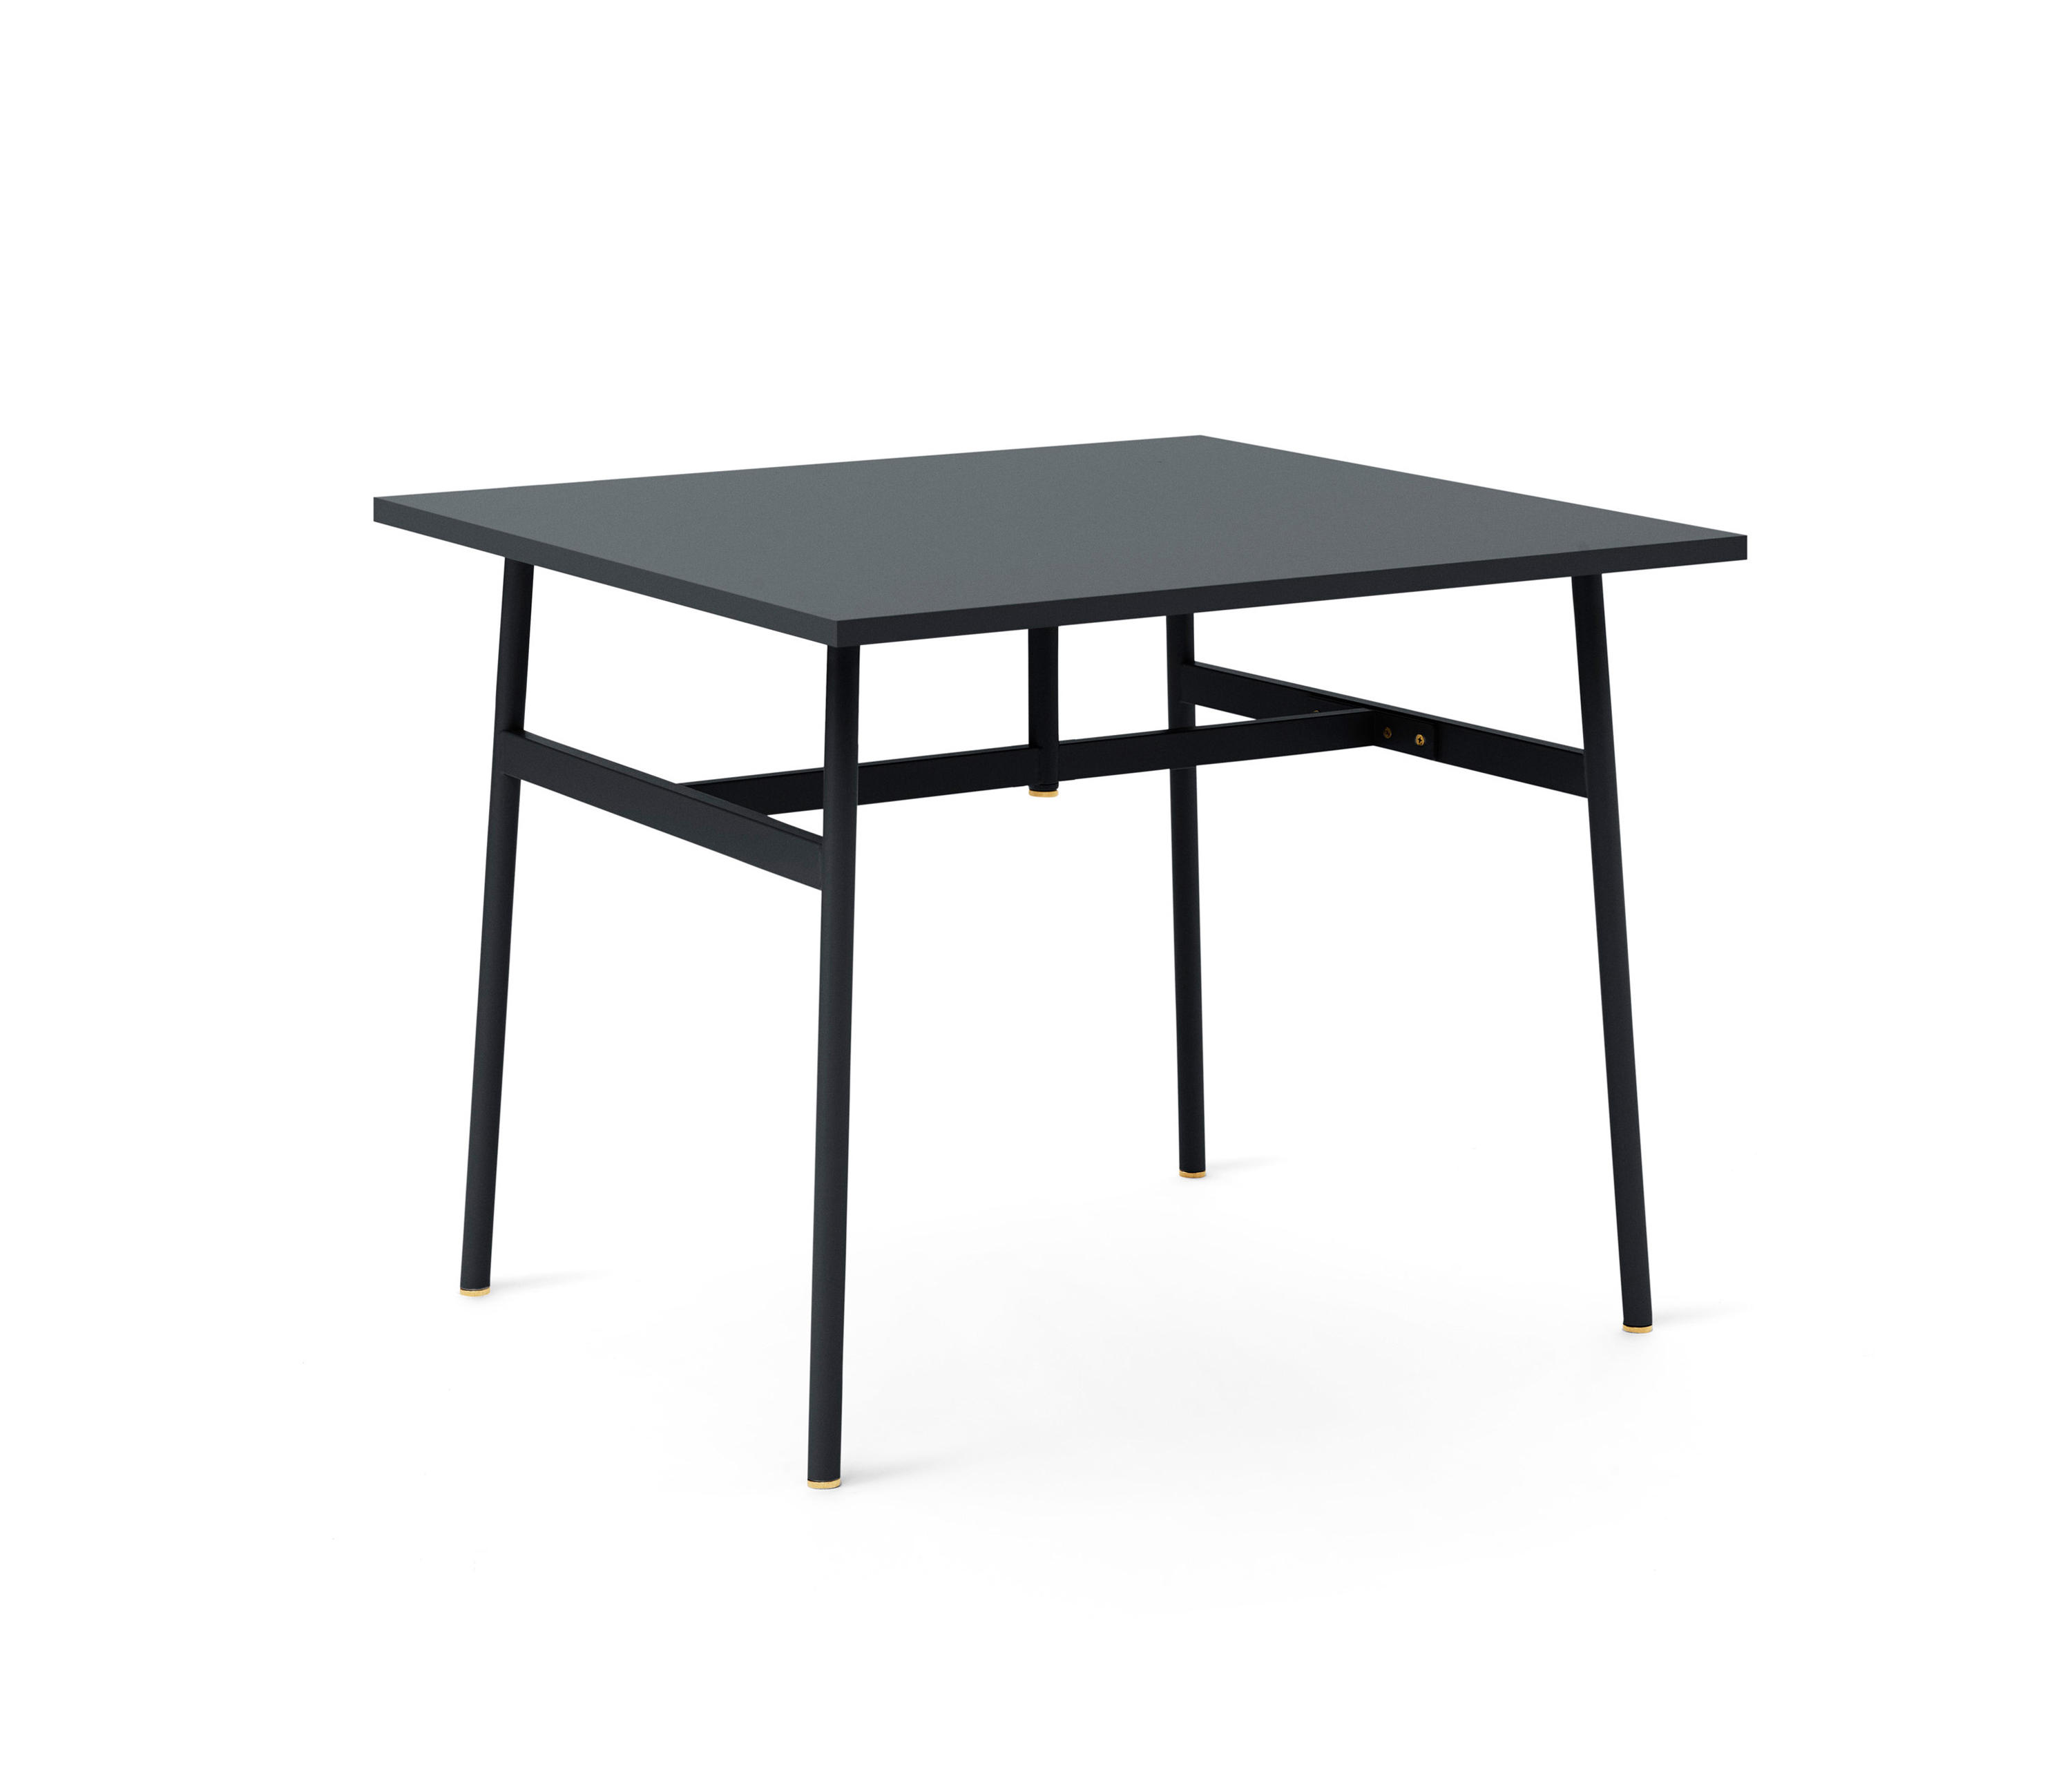 Union Table By Normann Copenhagen | Dining Tables